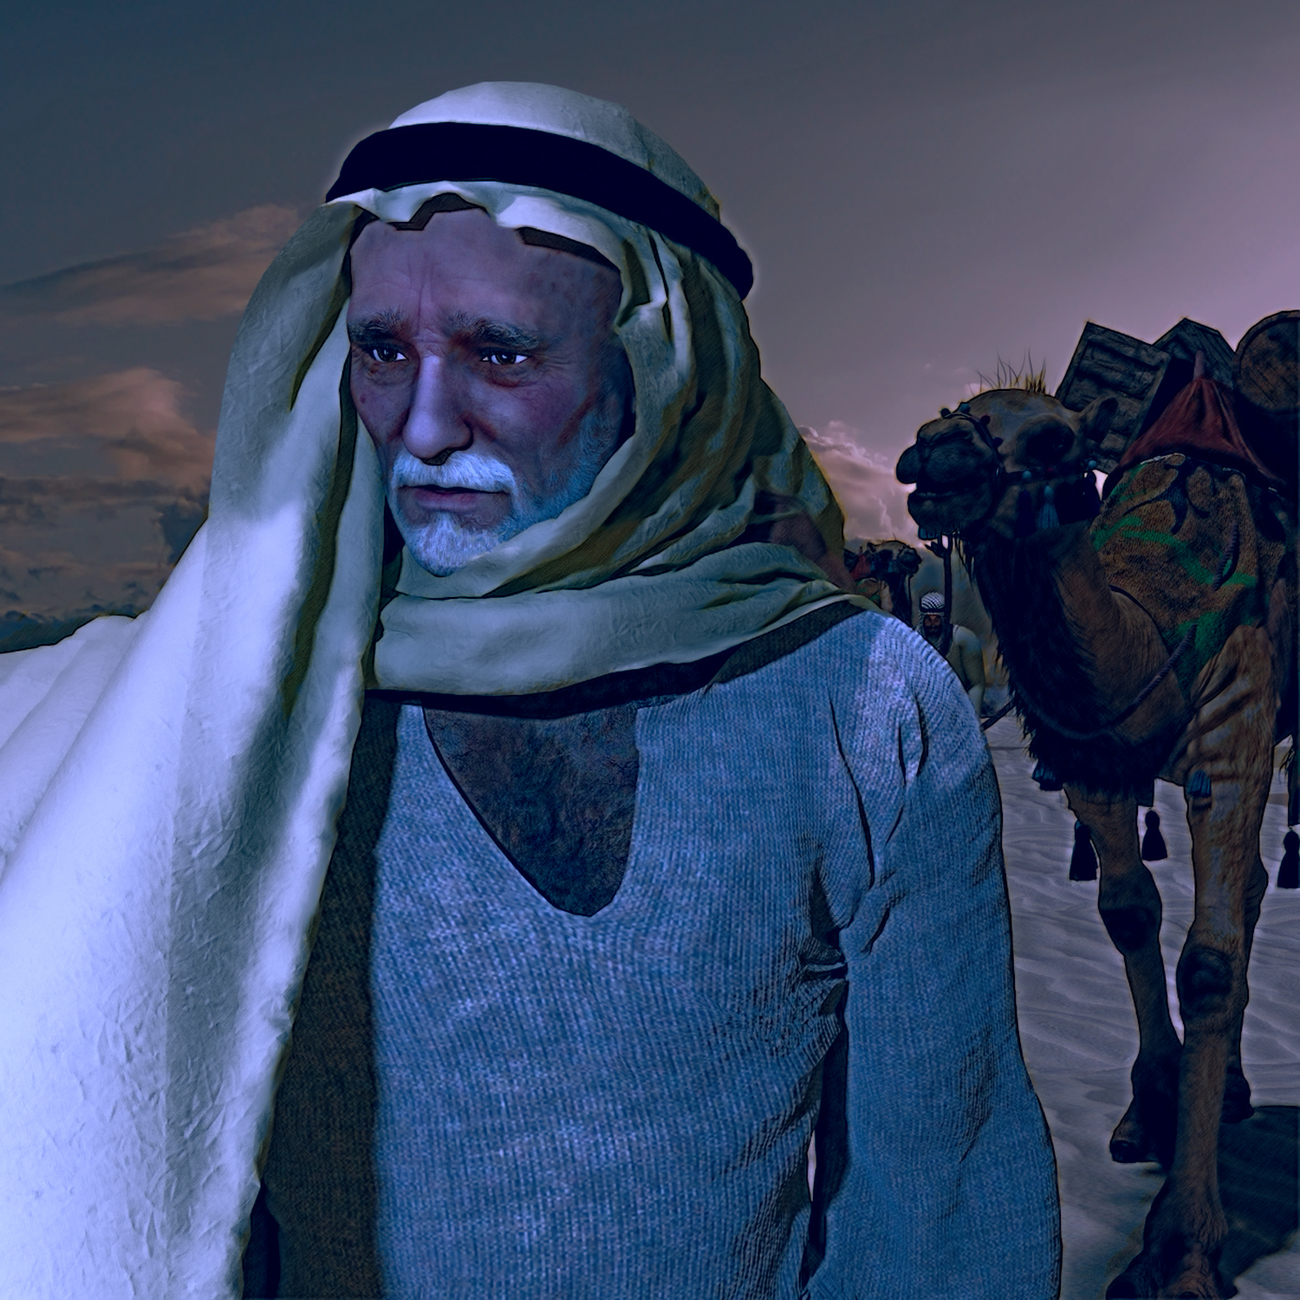 Chameliers Camel driver